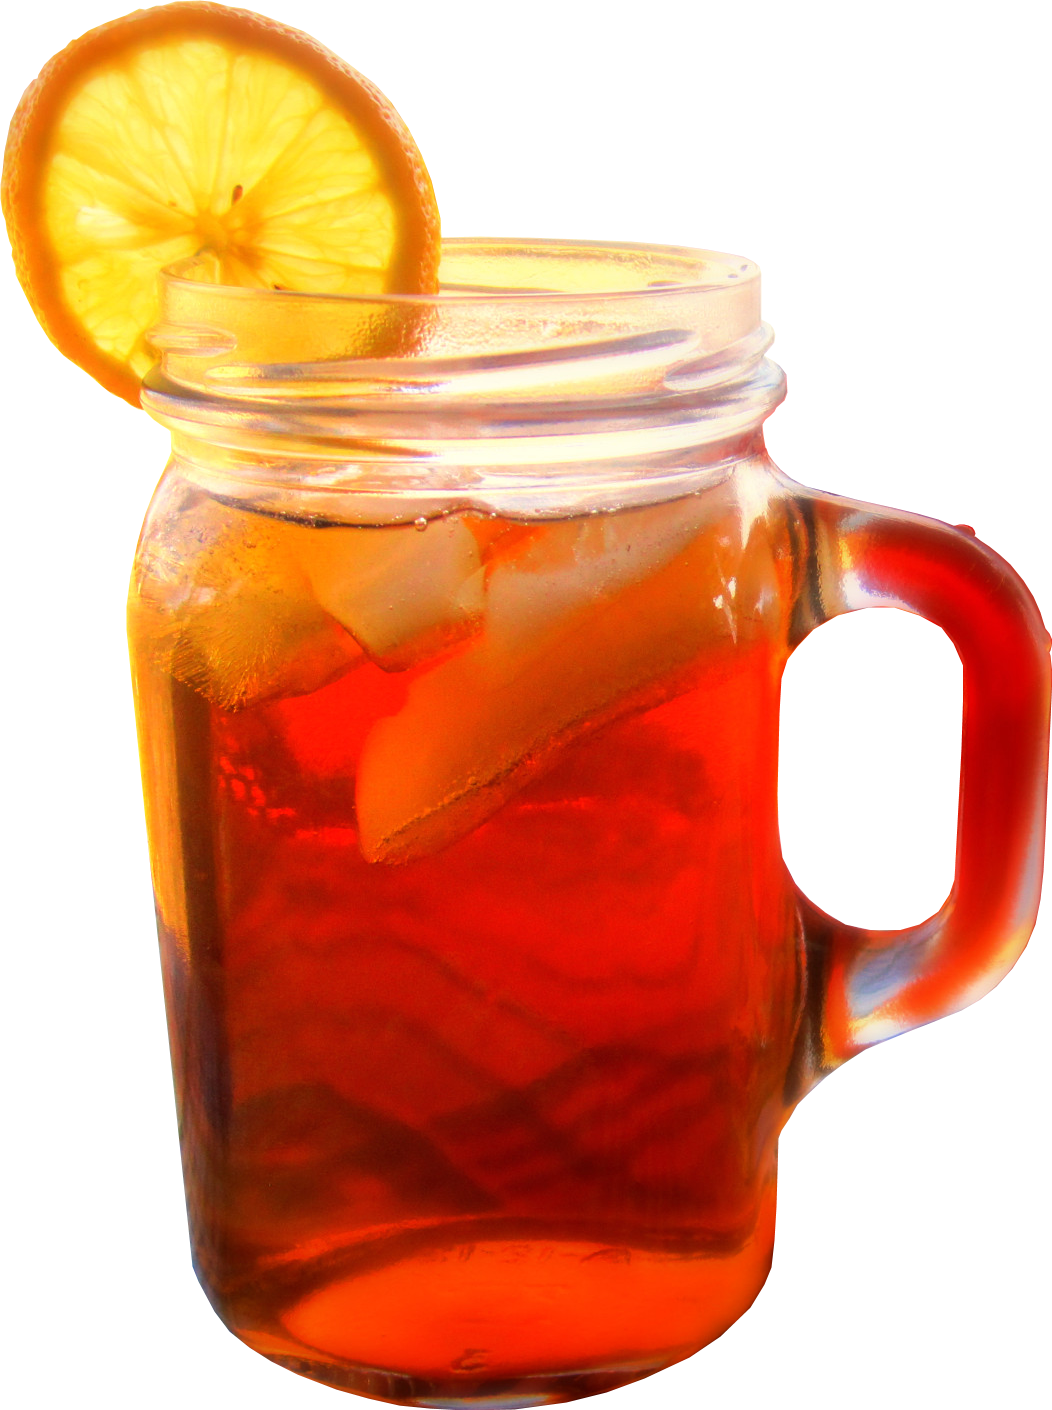 1052x1410 Pics For Gt Iced Tea Pitcher Png Clip Art Teas